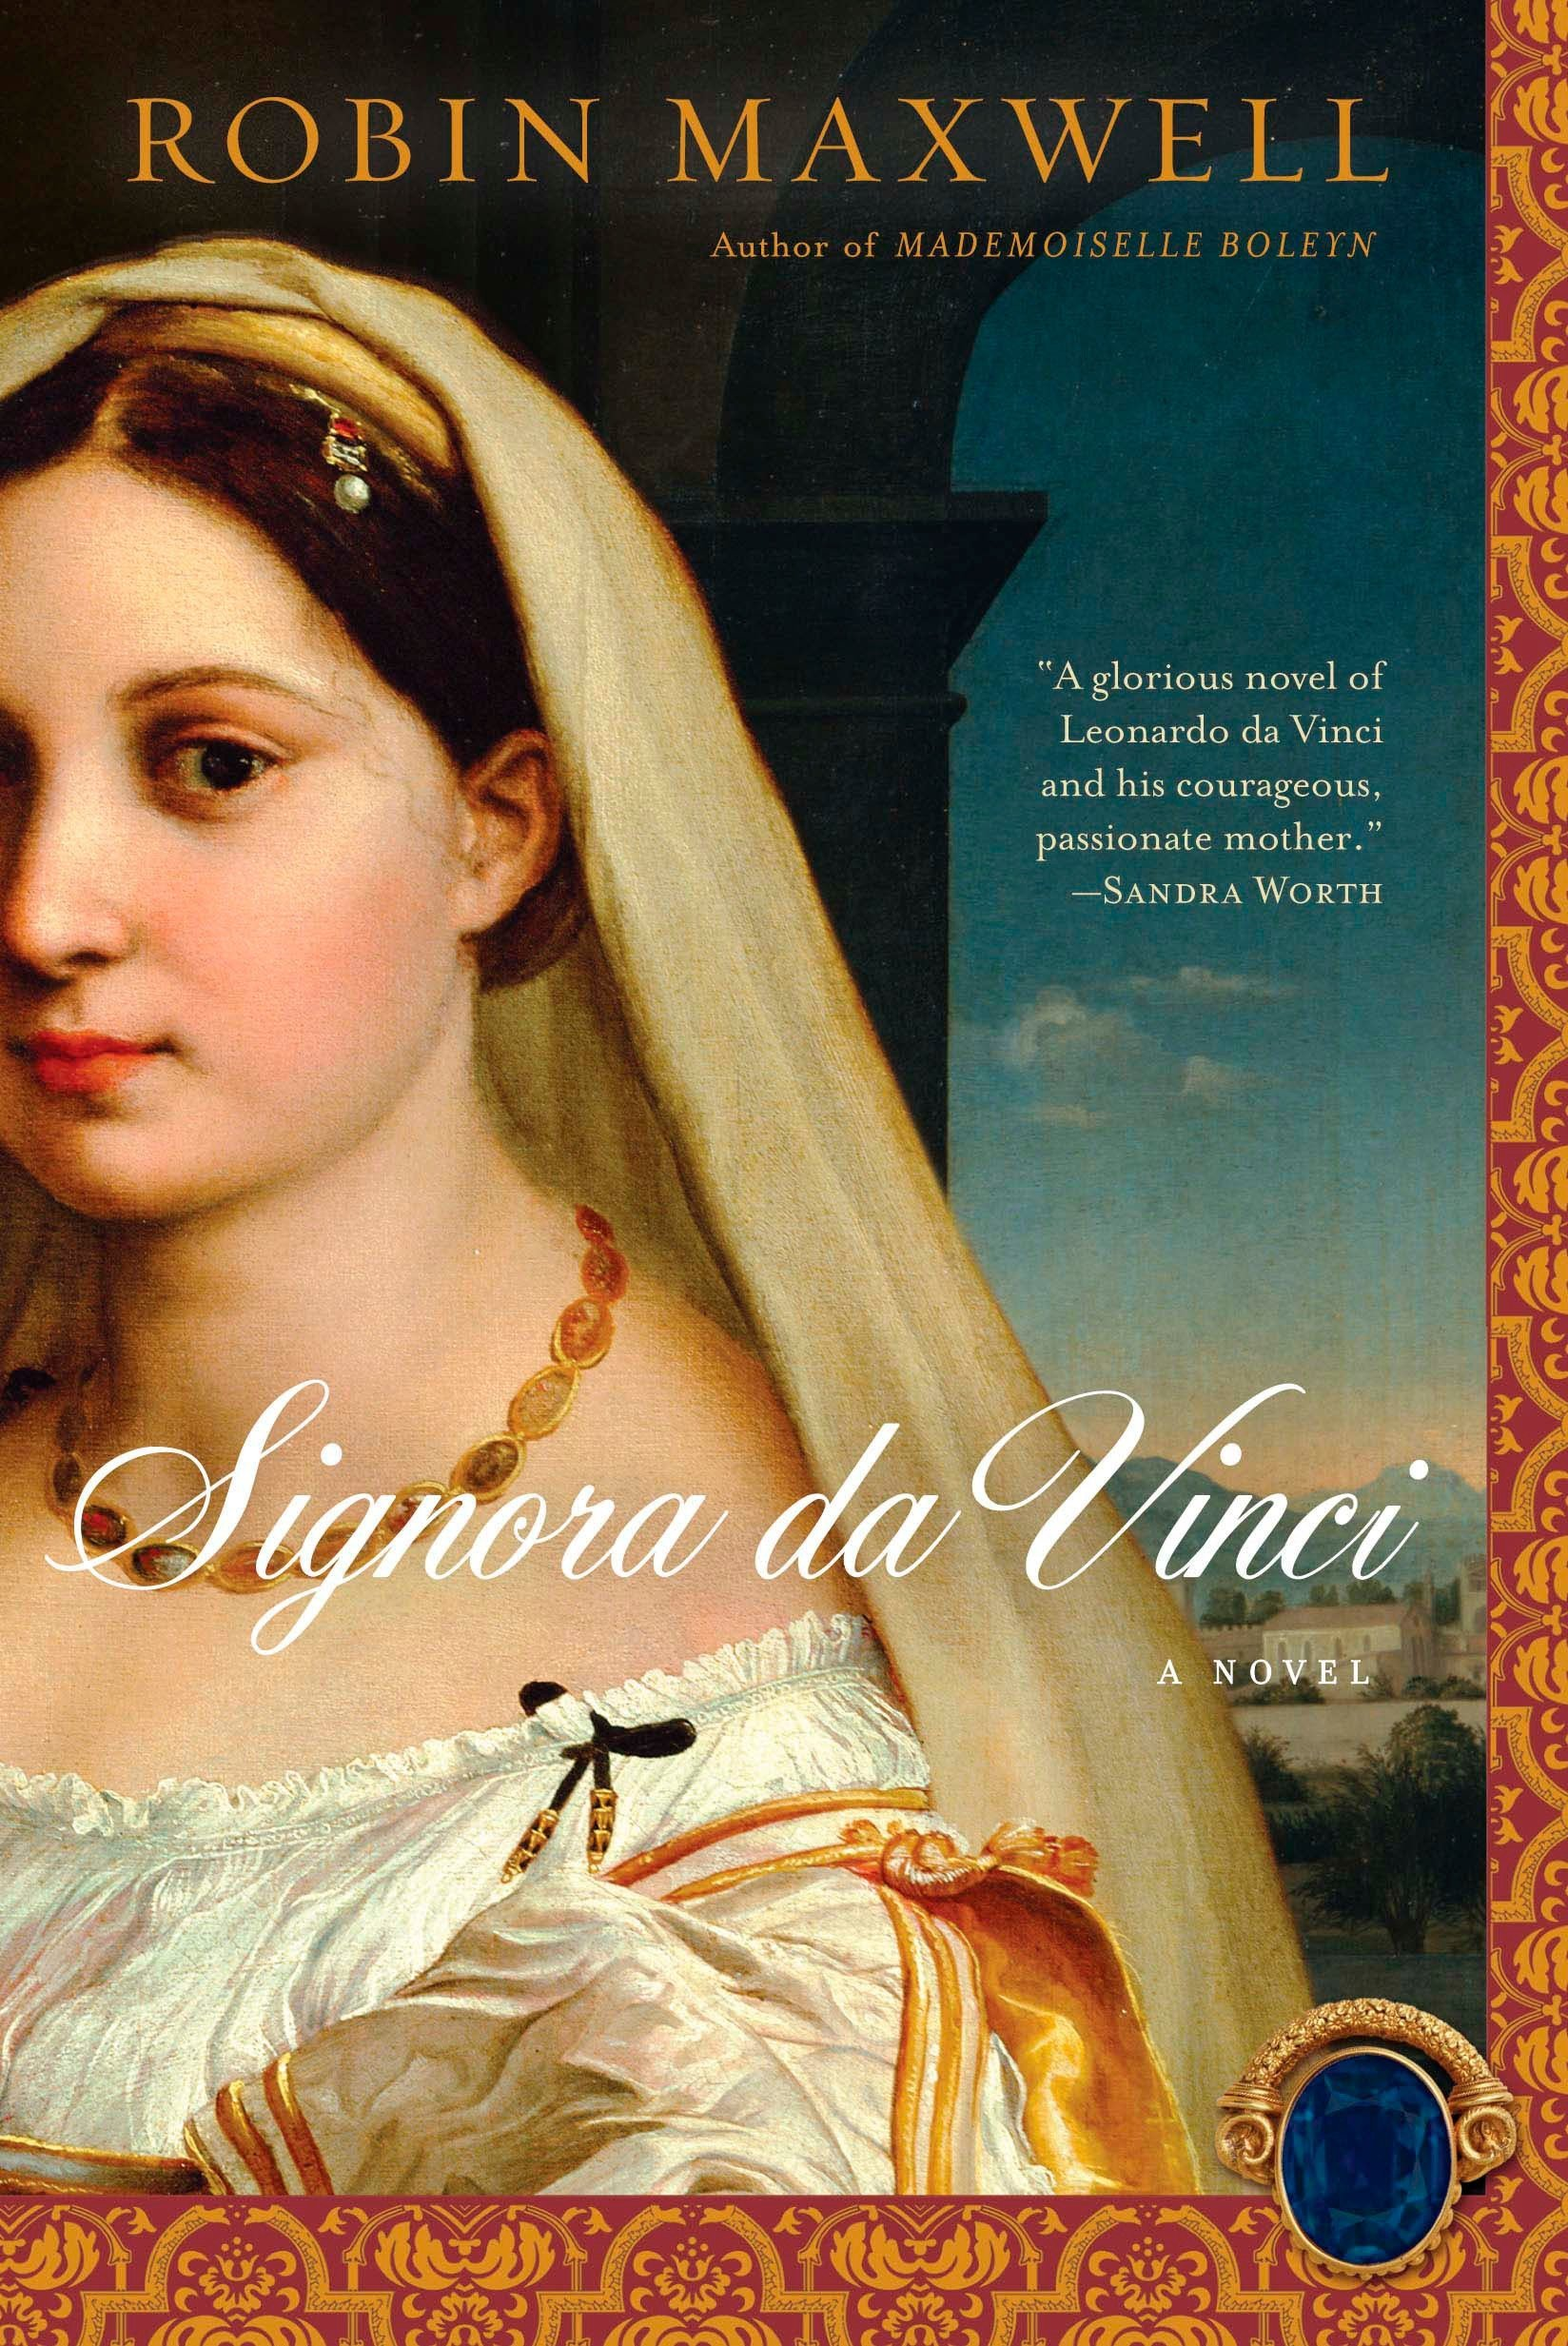 Signora da Vinci by Robin Maxwell - This one is about Leonardo da Vinci's mother. We know precious little about the real woman from history, but this novel does a great job of imagining the woman who clearly lives inside Leonardo's heart and mind.